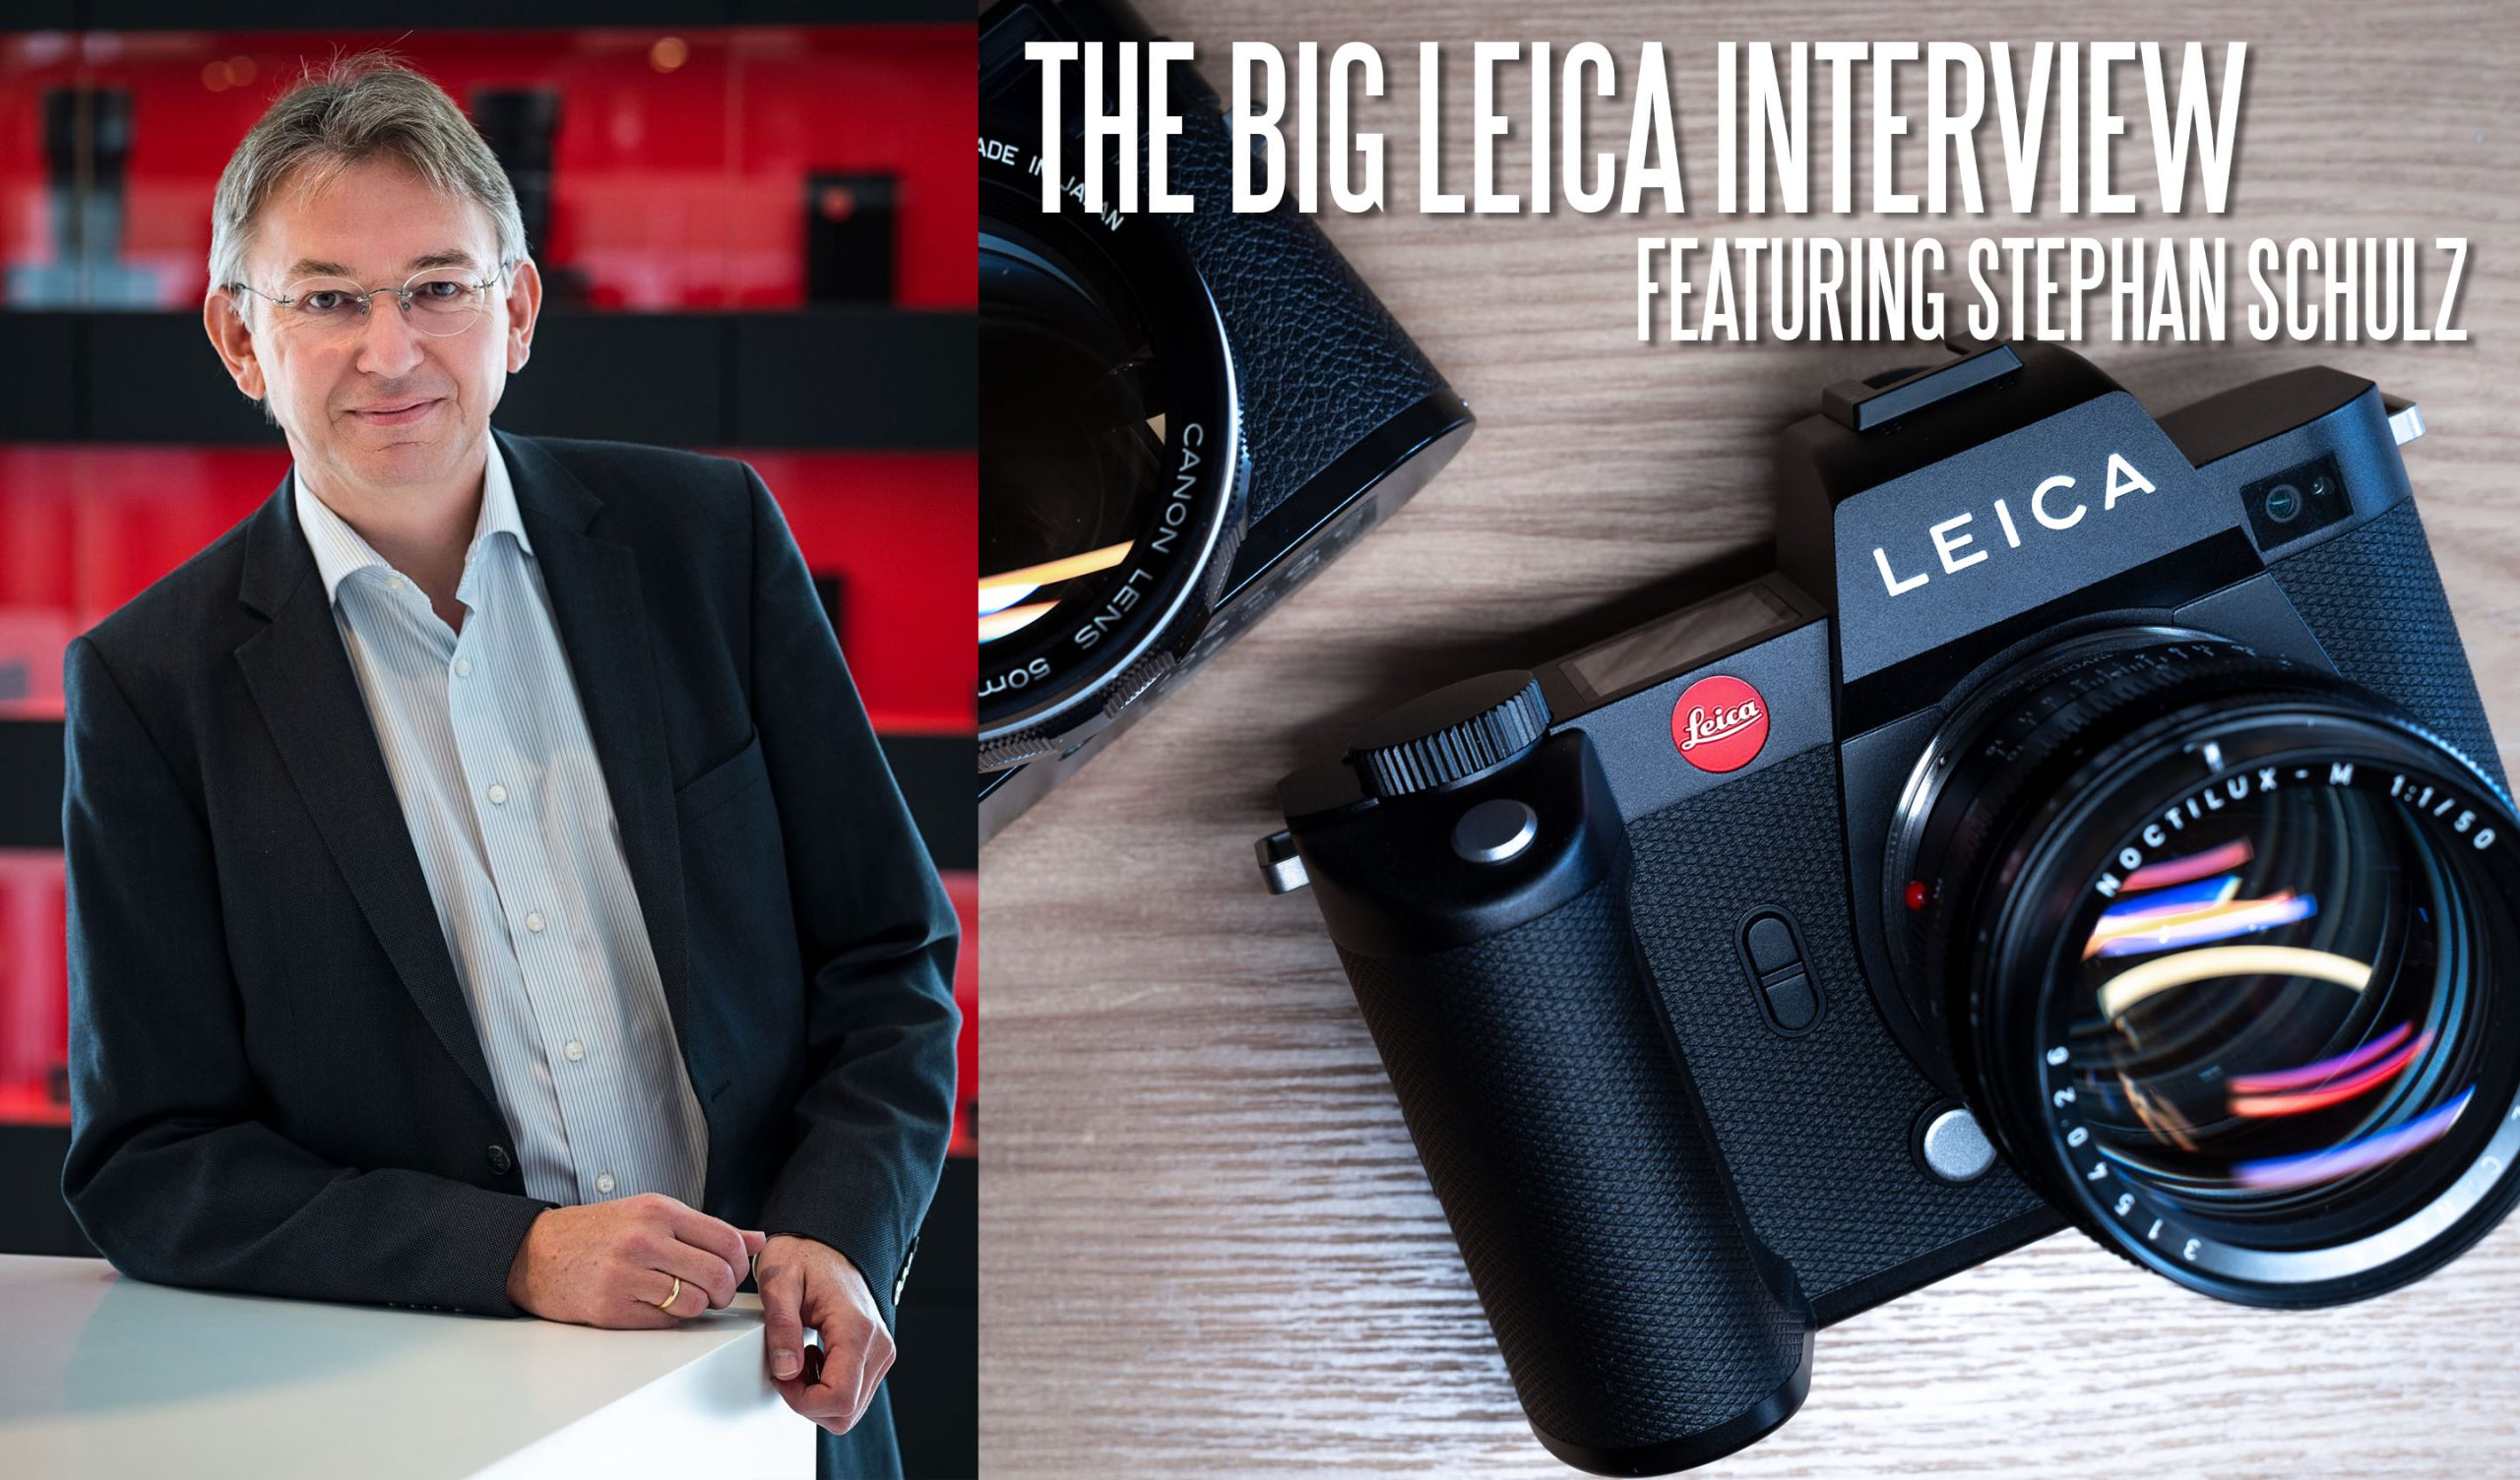 Stephan-Schulz-Leica-Camera-EOSHD-Interv